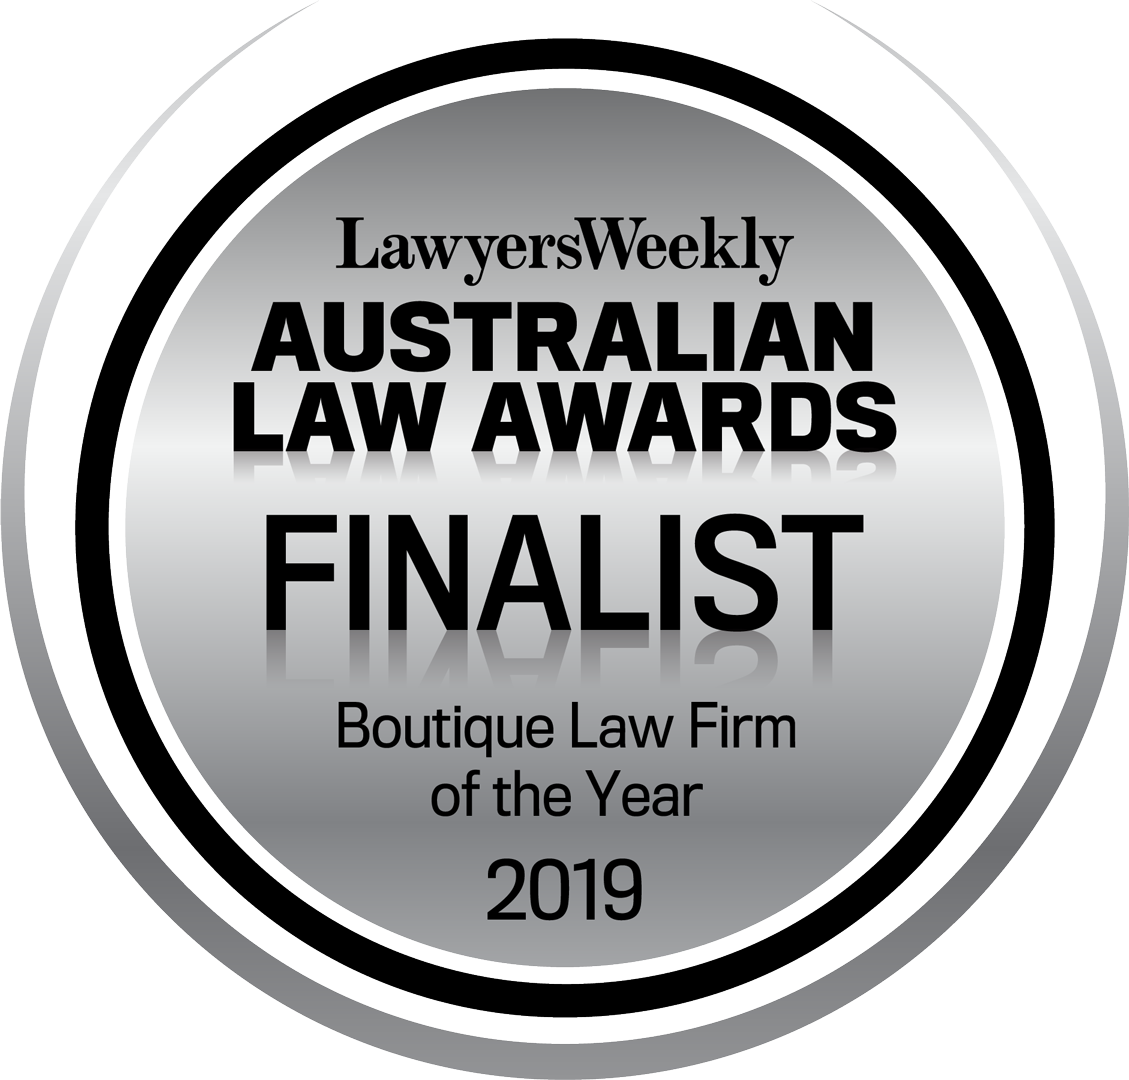 ALA_2019_Boutique-Law-Firm-of-the-year_WEB